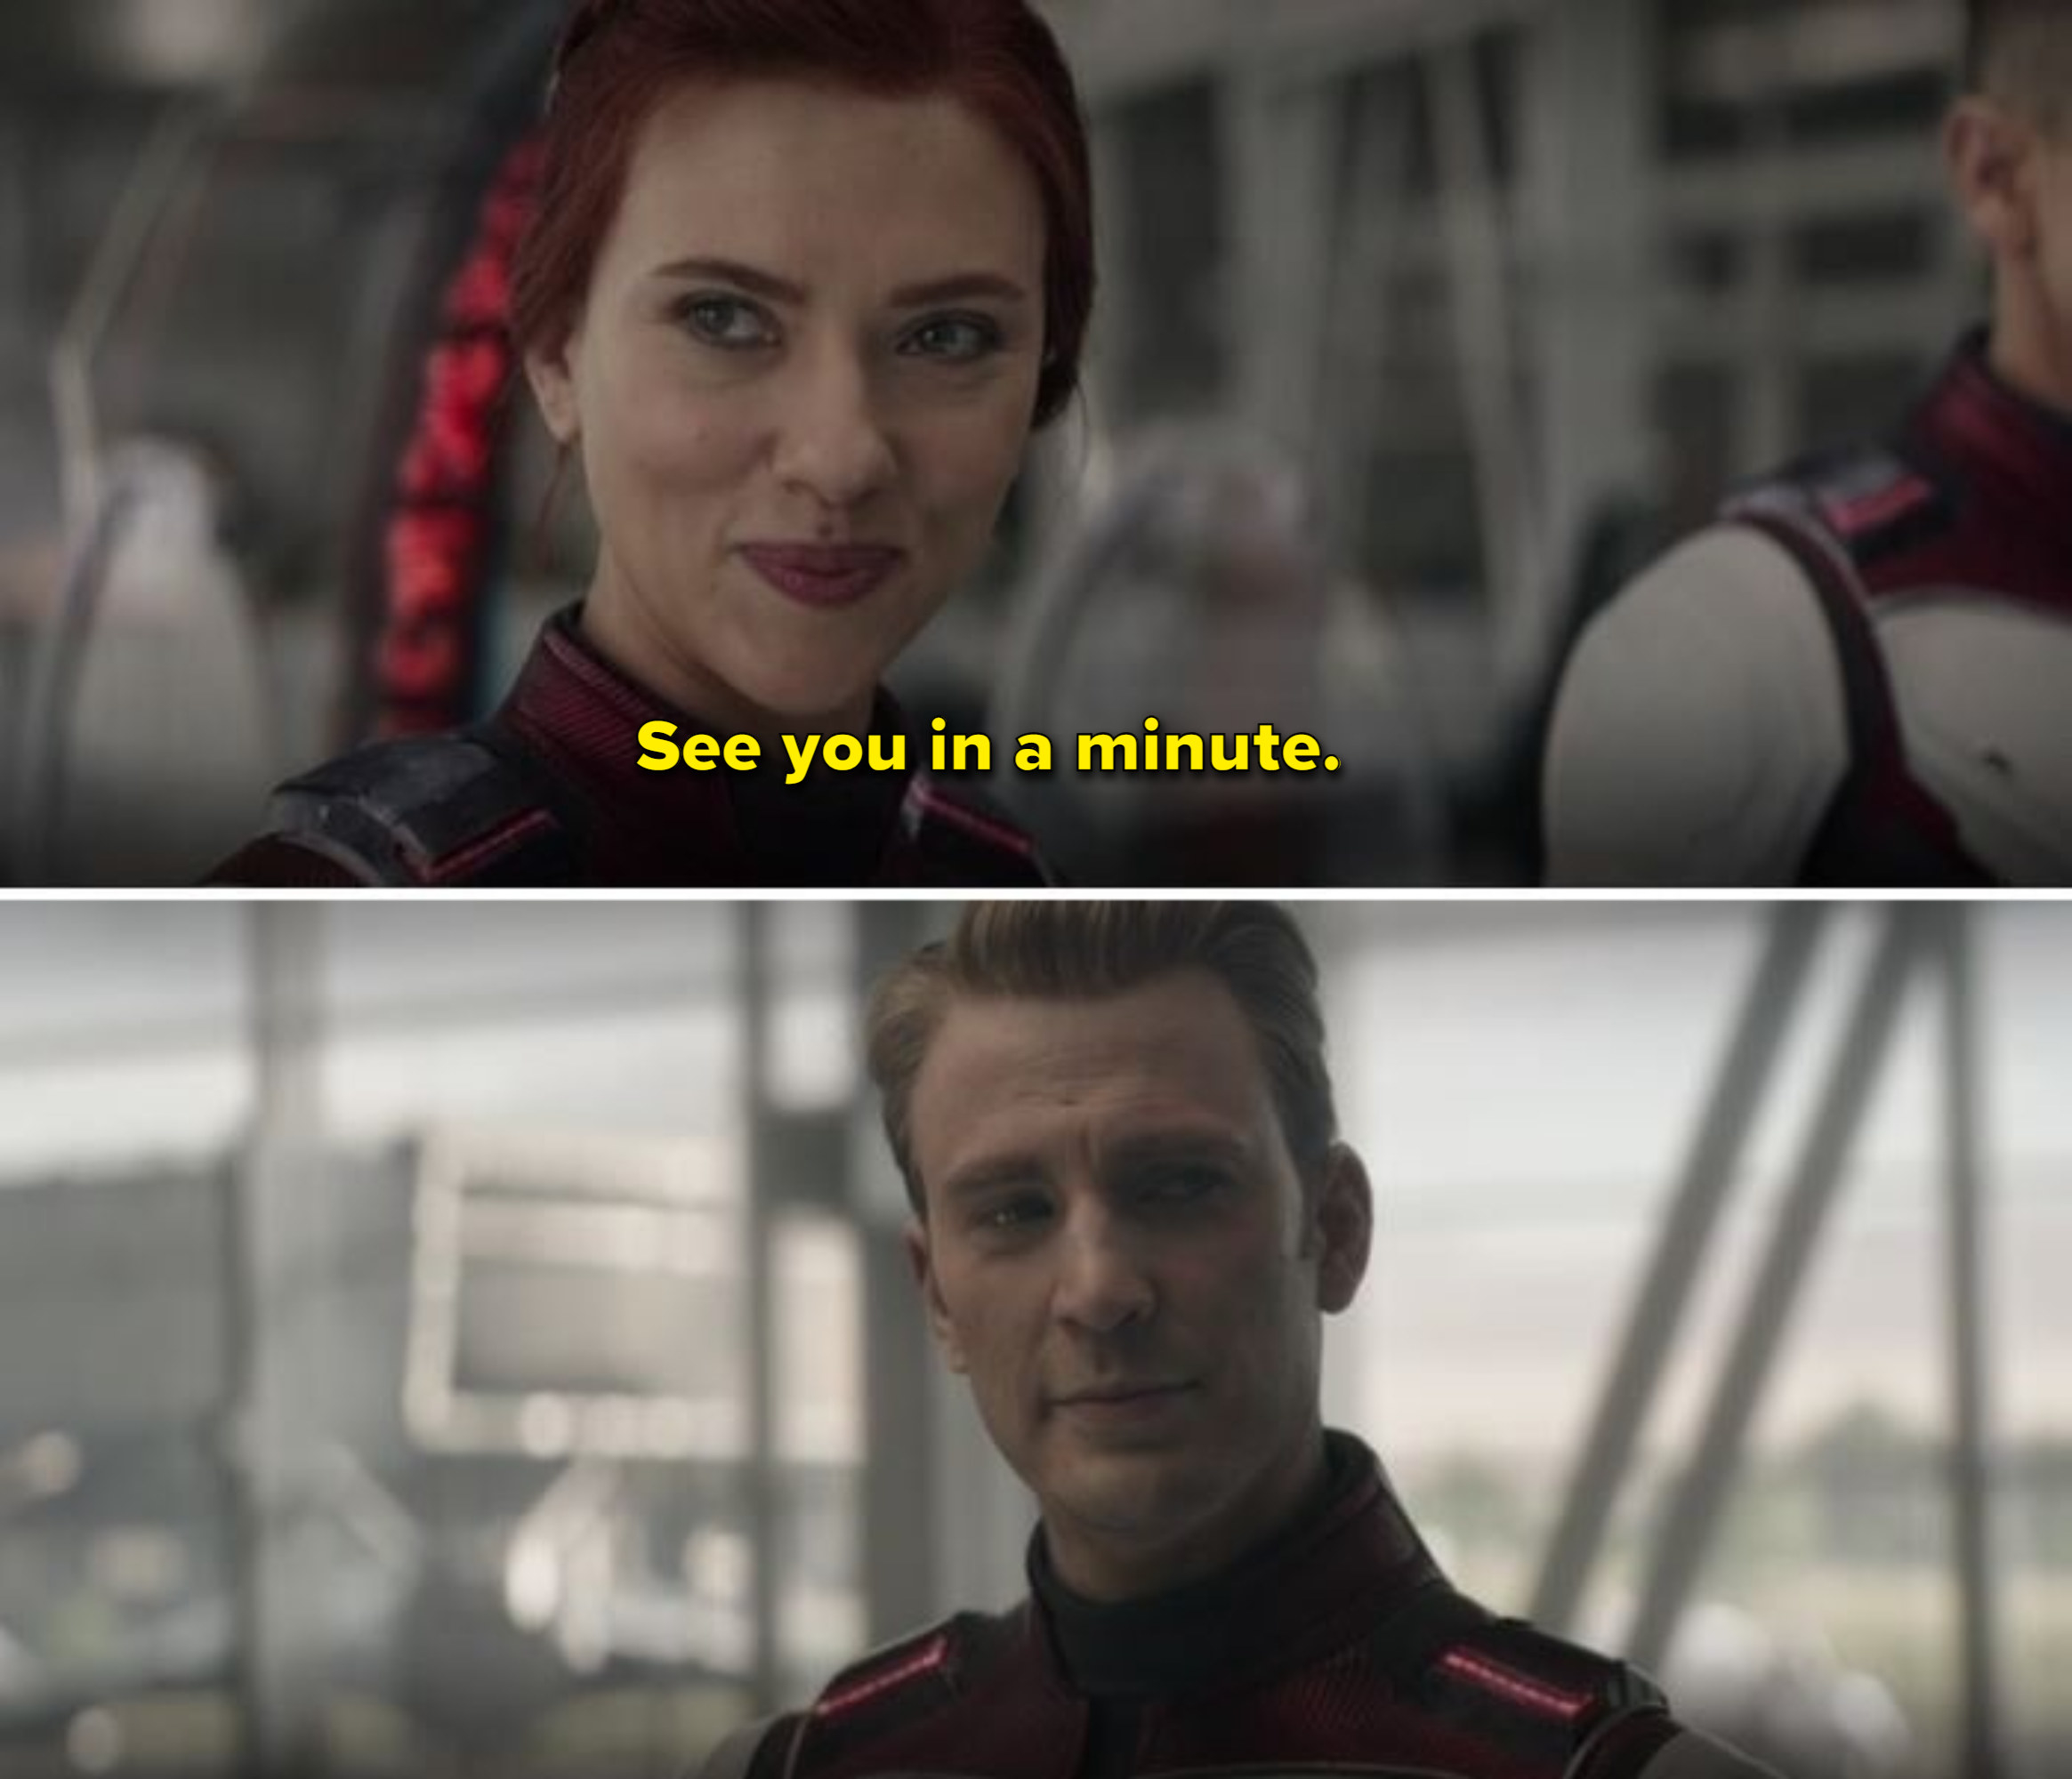 Black Widow says see you in a minute